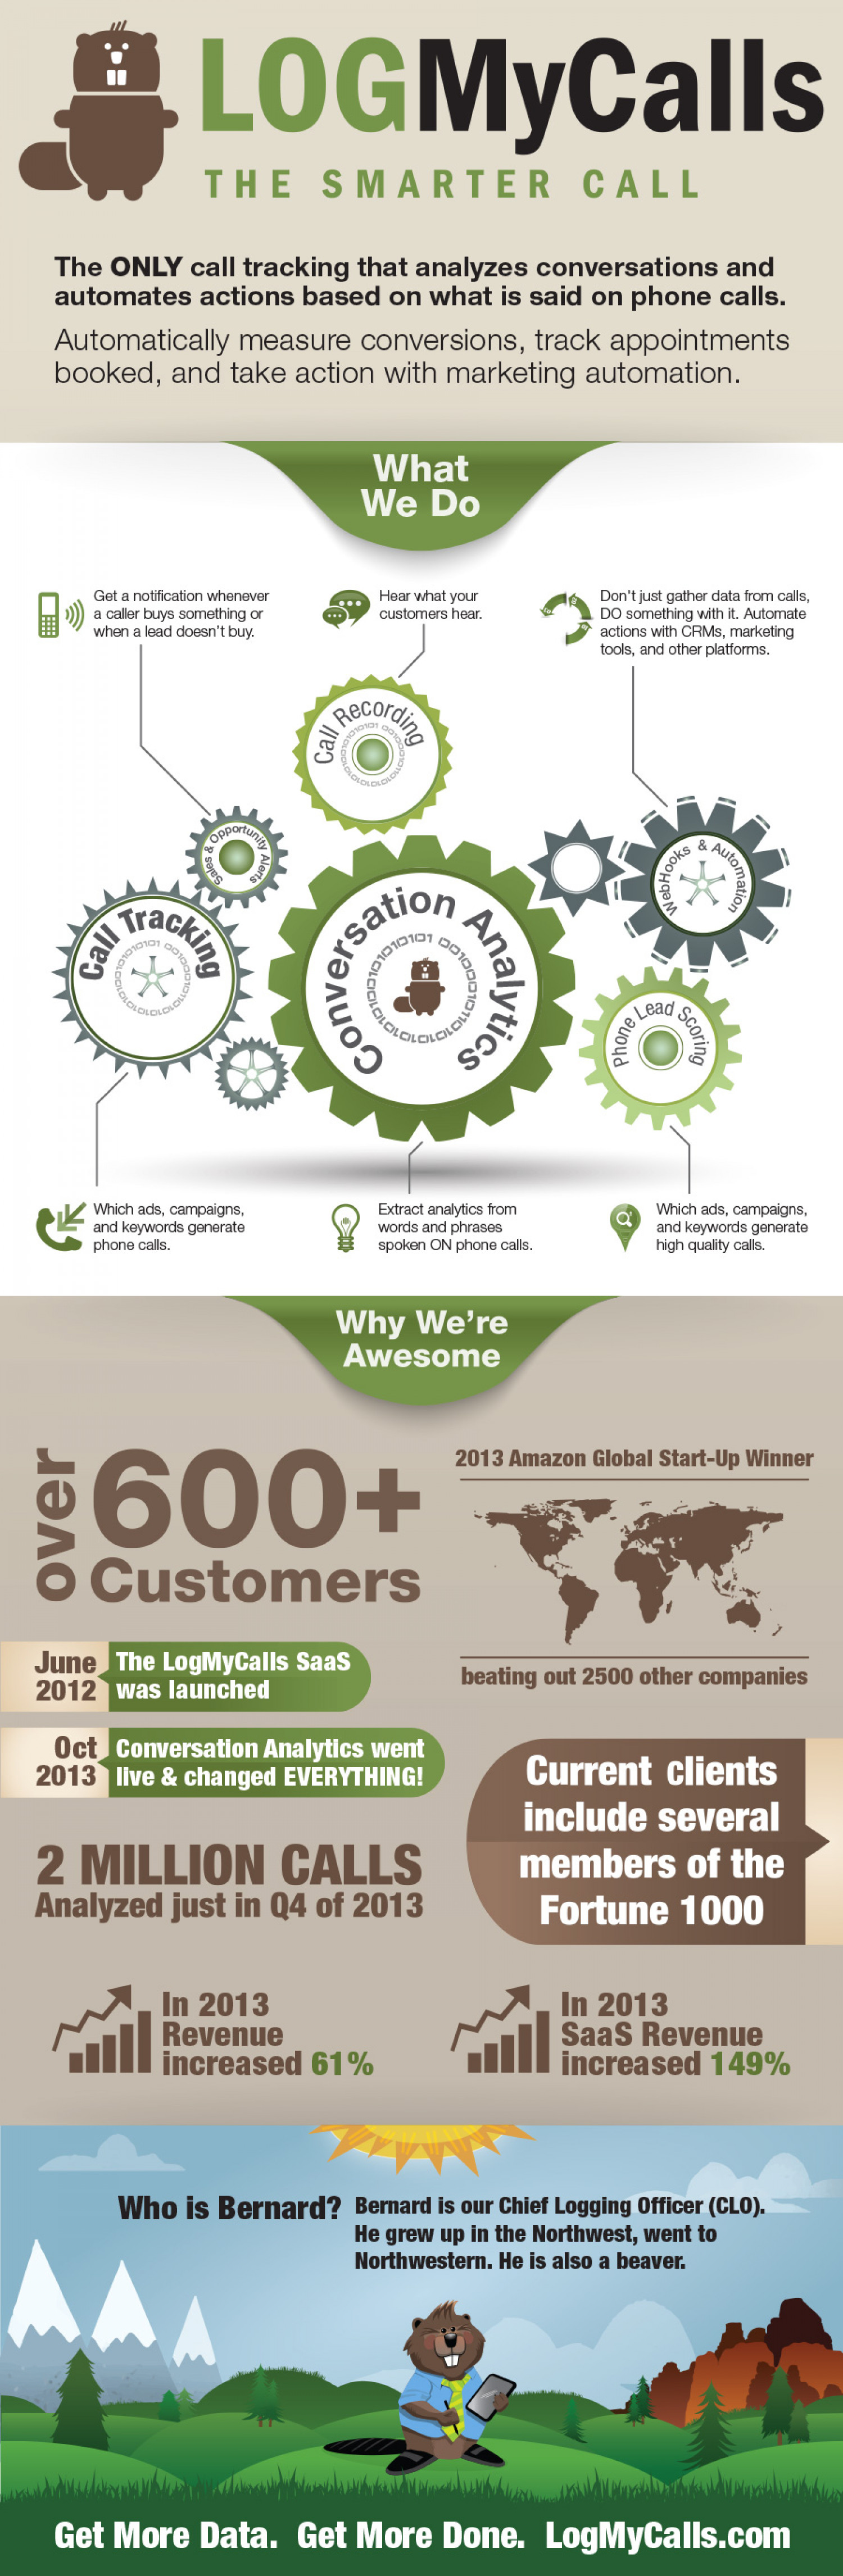 LogMyCalls: 2013 Year in Review Infographic